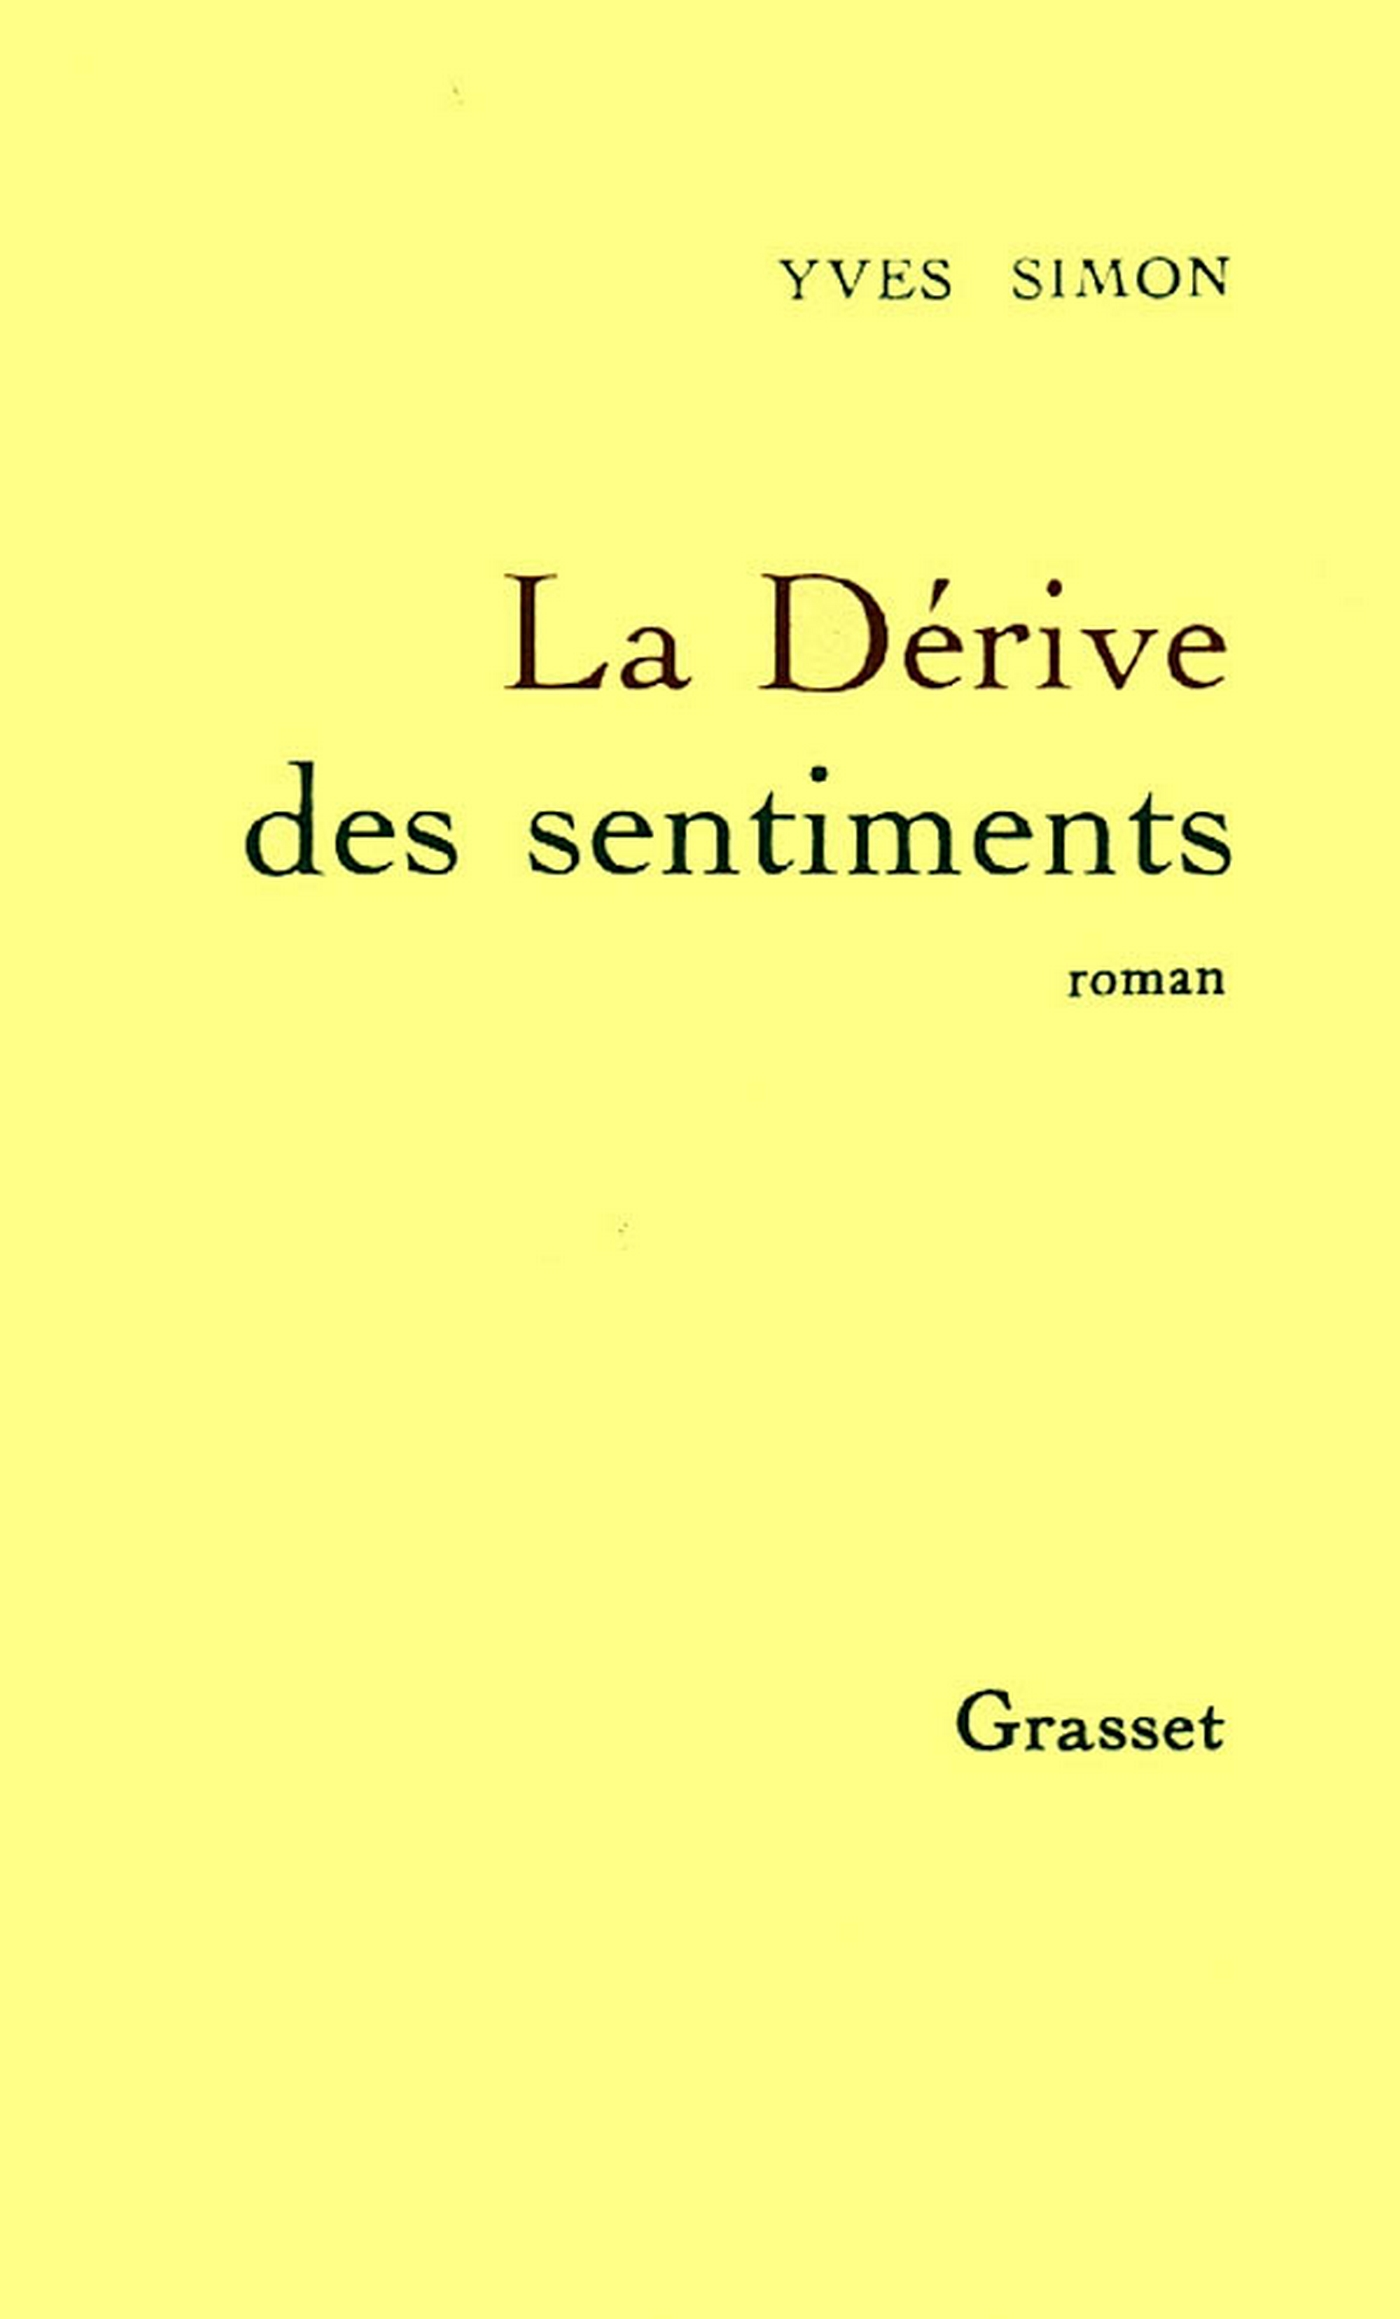 La dérive des sentiments